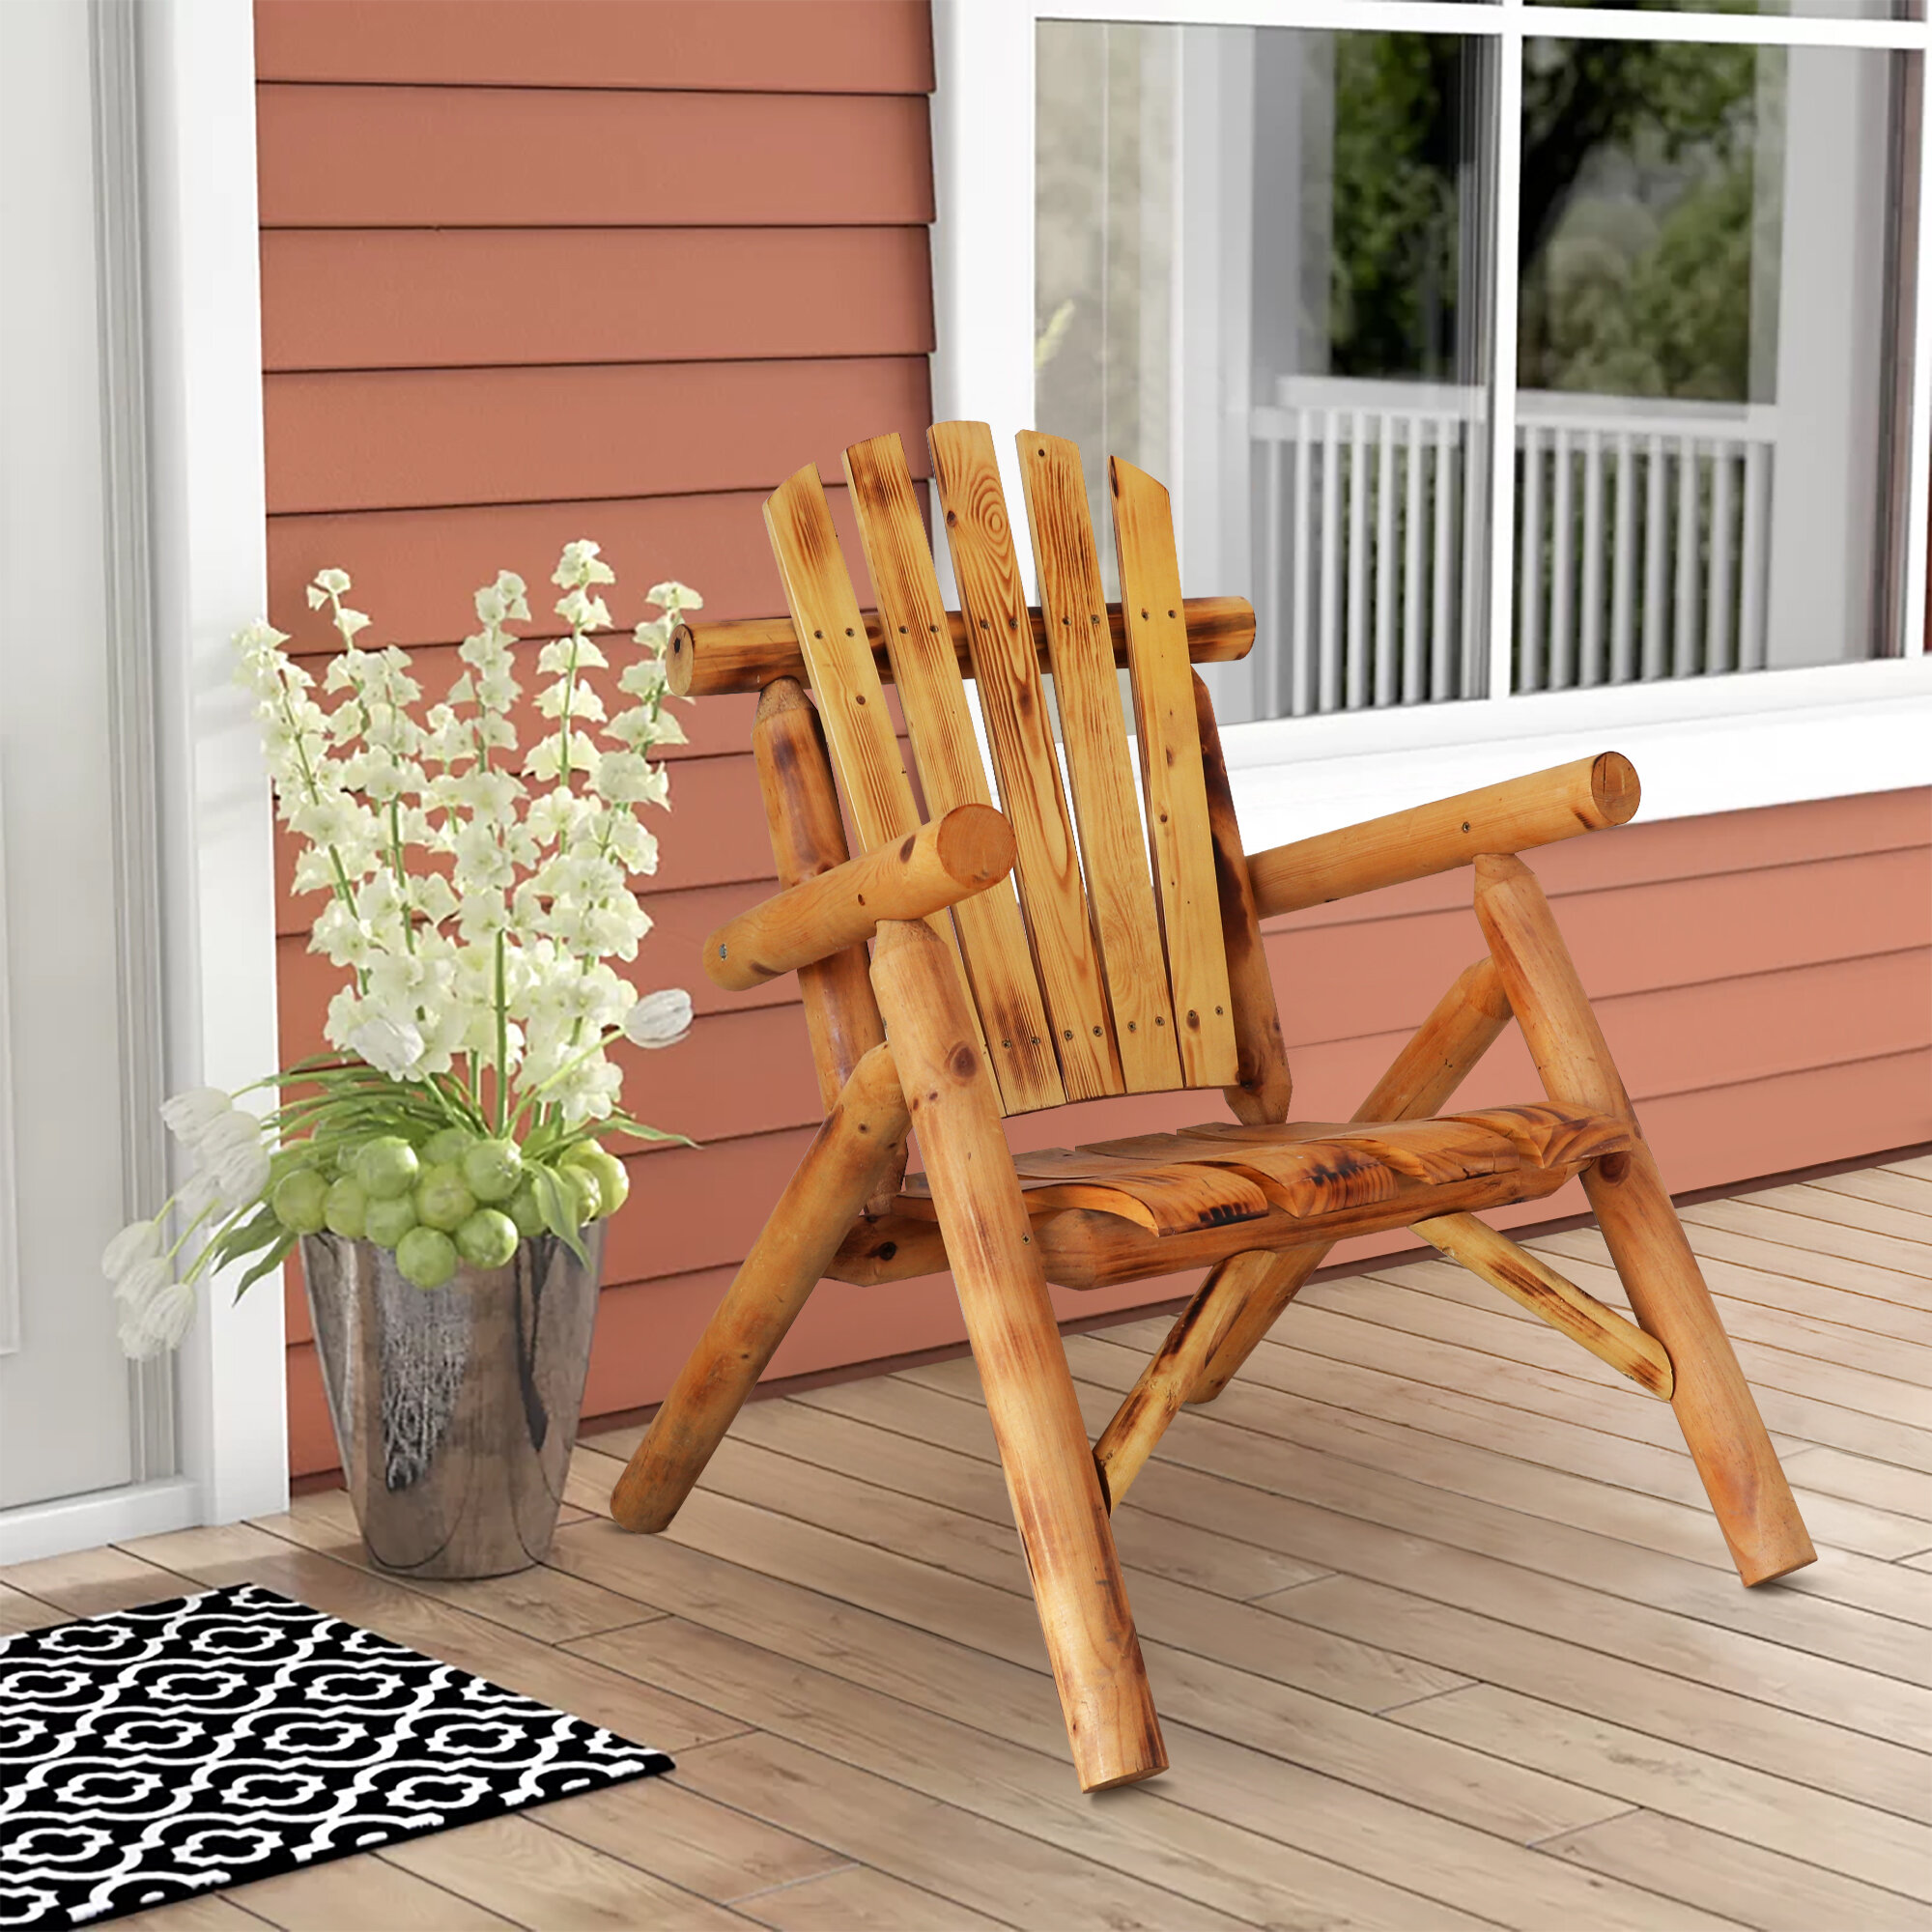 Zyaire Solid Wood Adirondack Chair